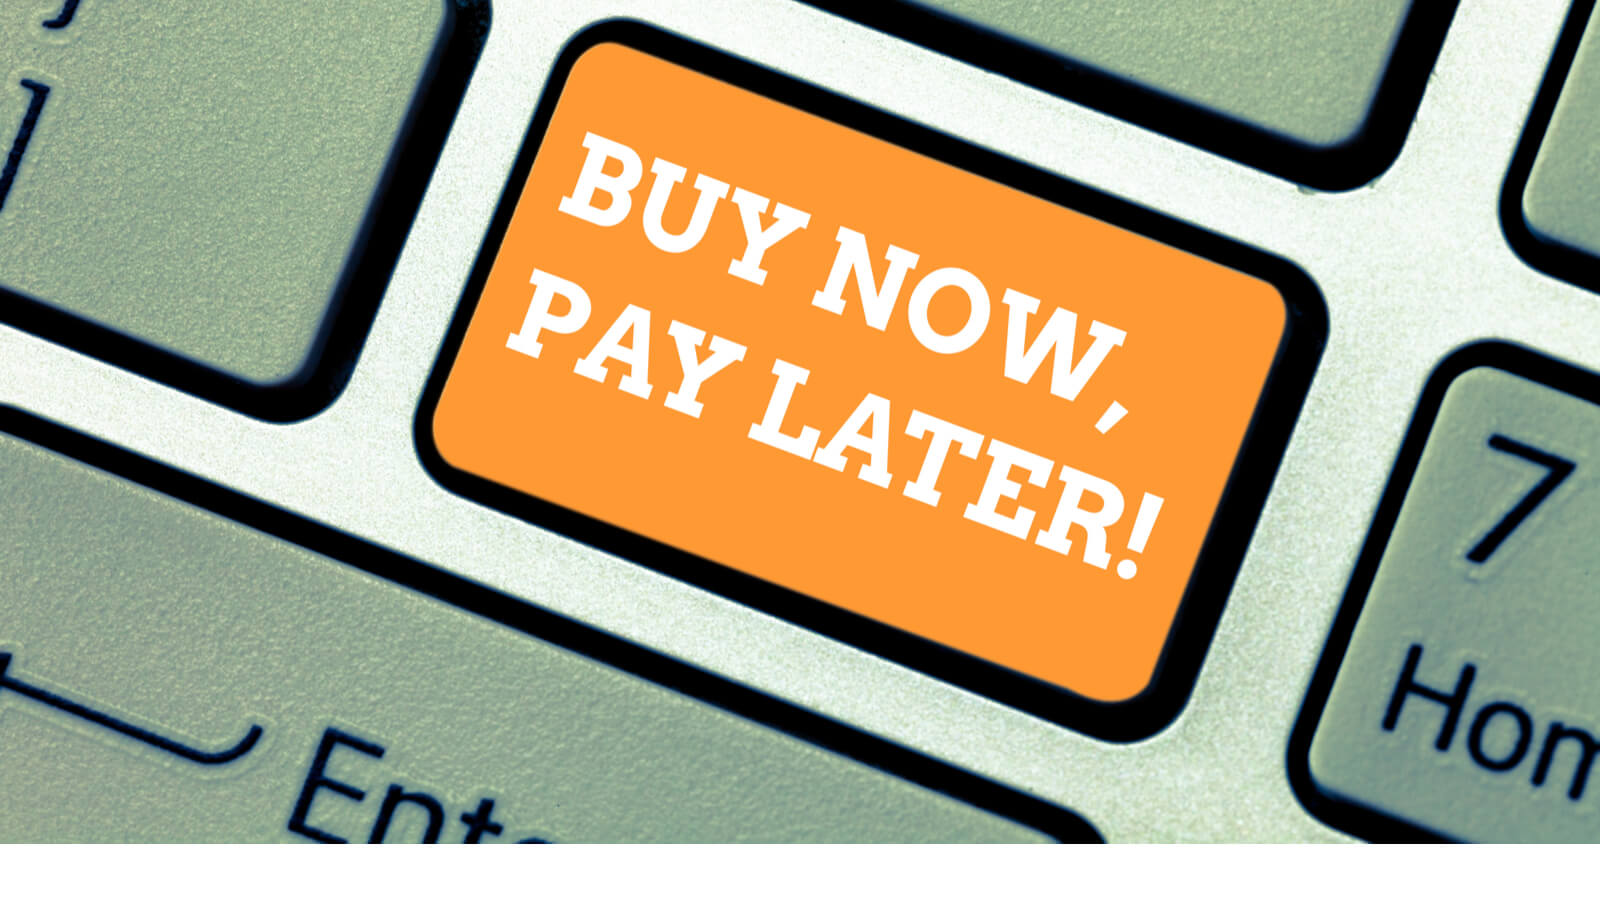 Buy Now Pay Later: What Traditional Card Issuers Should Know